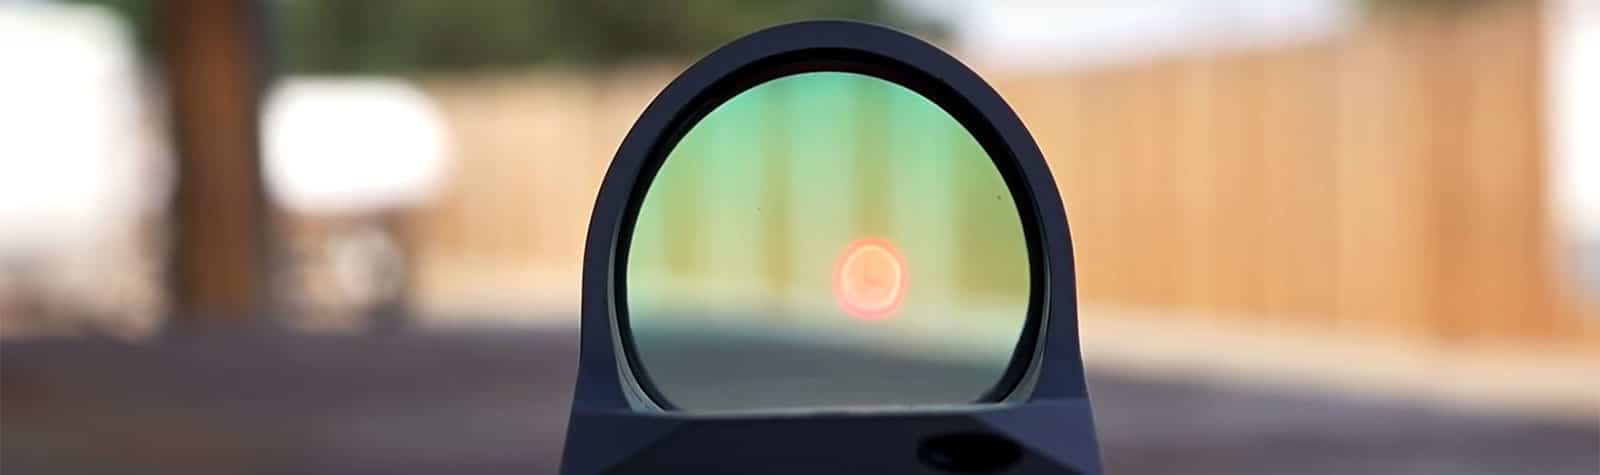 11 Best Reflex Sight Reviews 2020 with Buying Guide